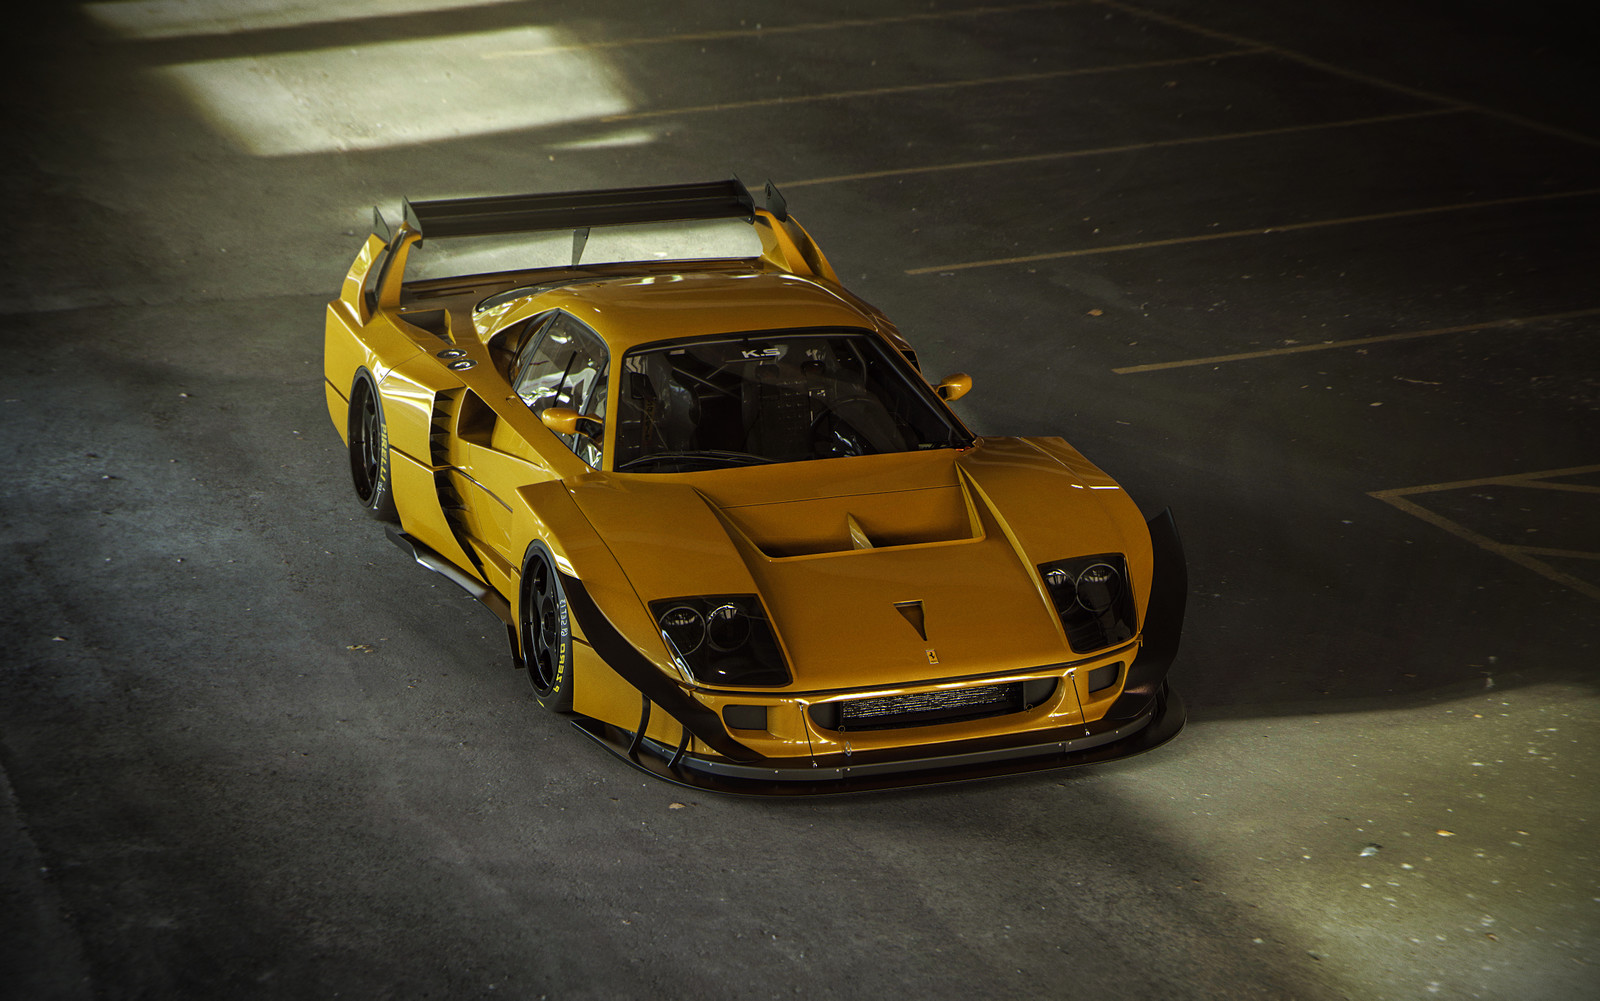 F40 LM Extreme